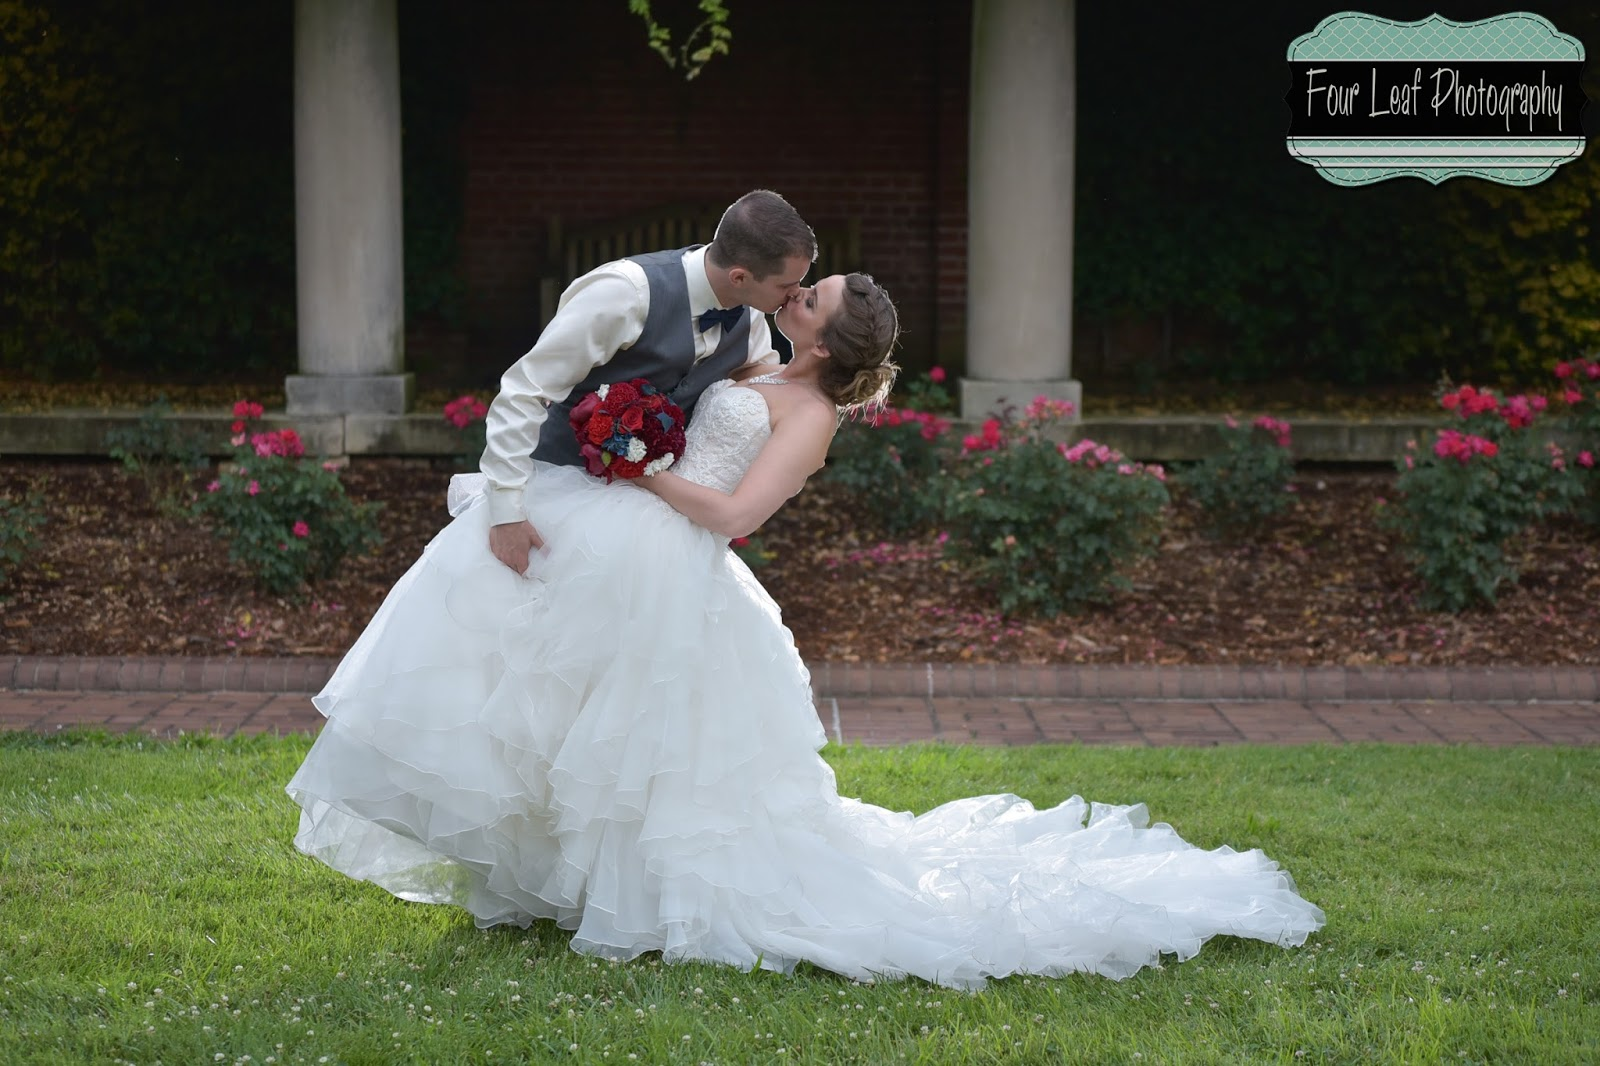 Blake And Danielle Had A Beautifully Romantic Wedding Located At The Garden Court Venue In Louisville Ky Since Was On July 3rd